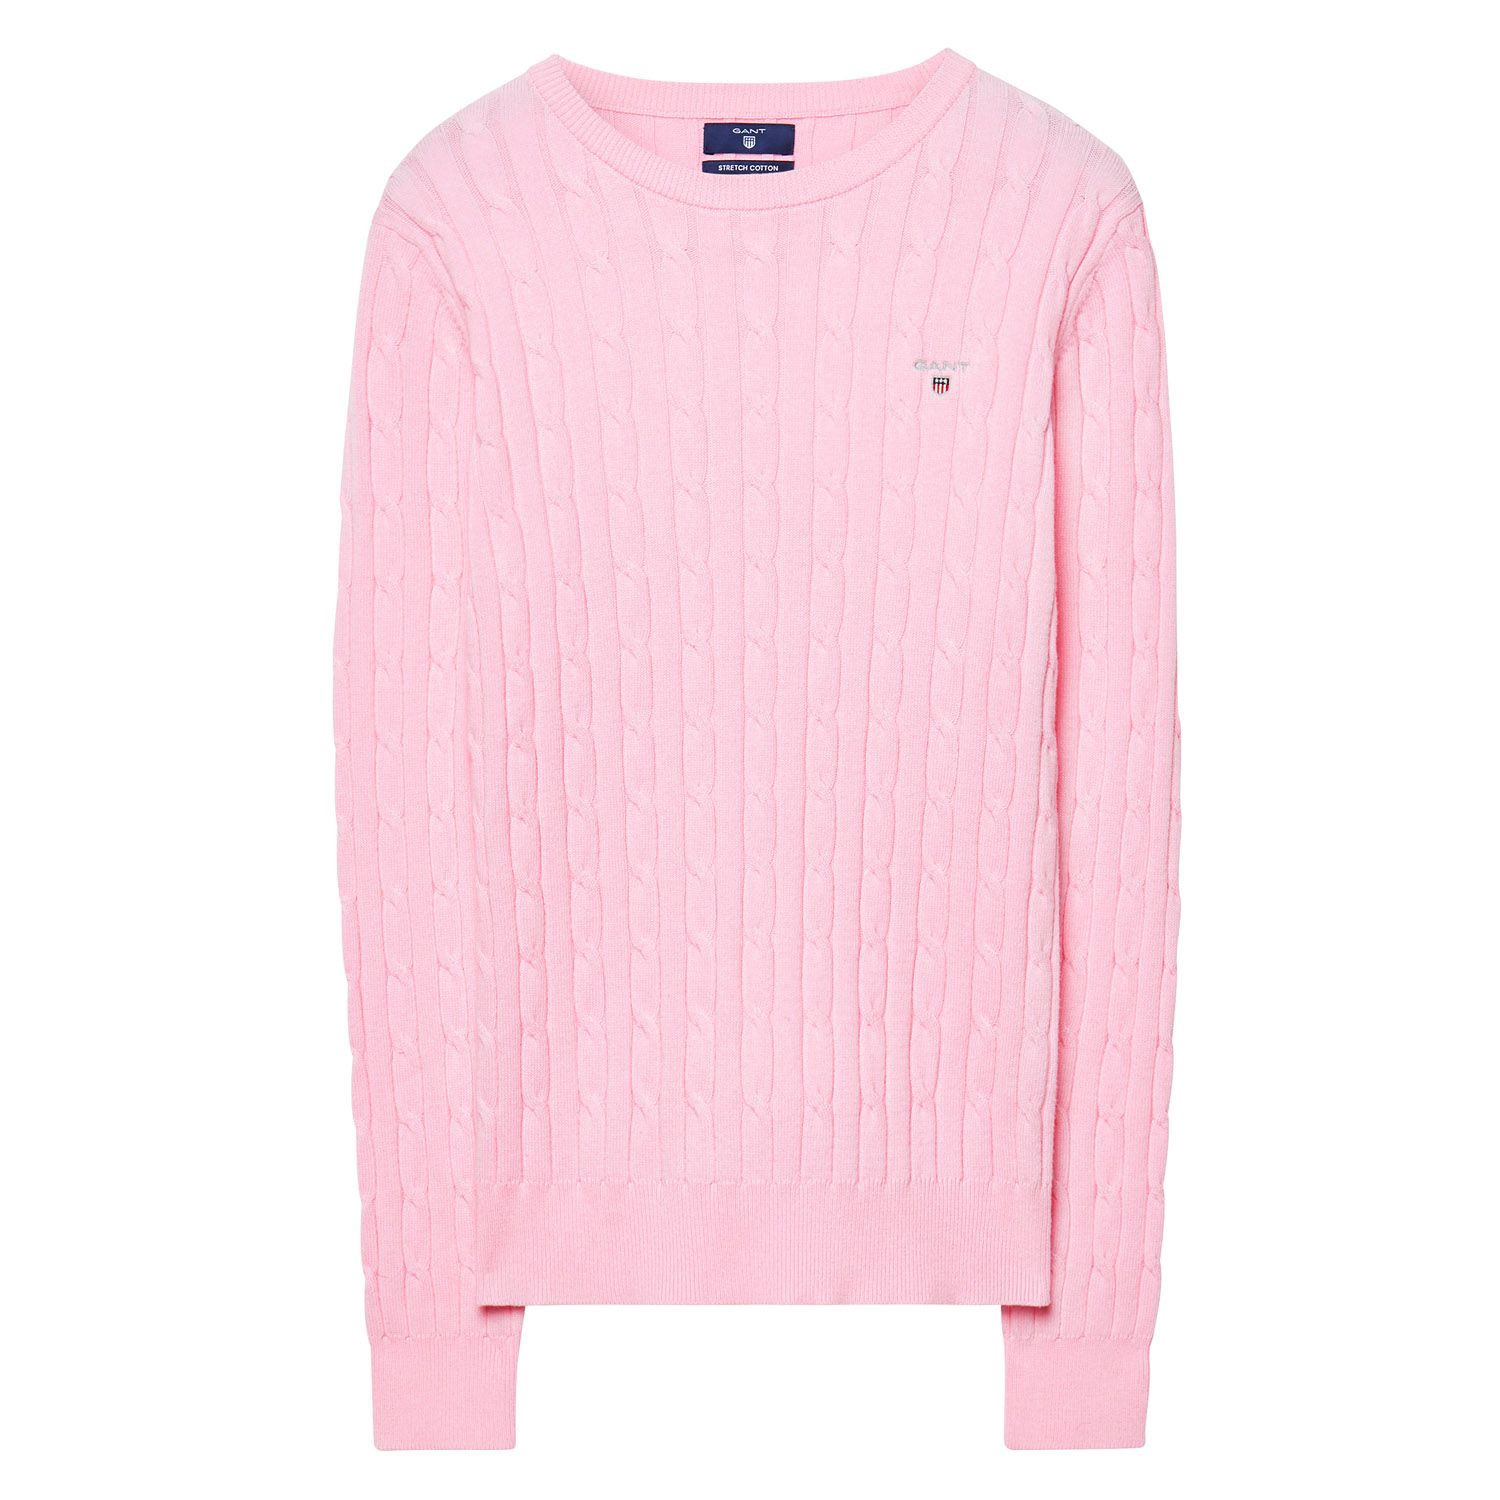 Gant Stretch Cotton Cable Crew Sweater Color: California